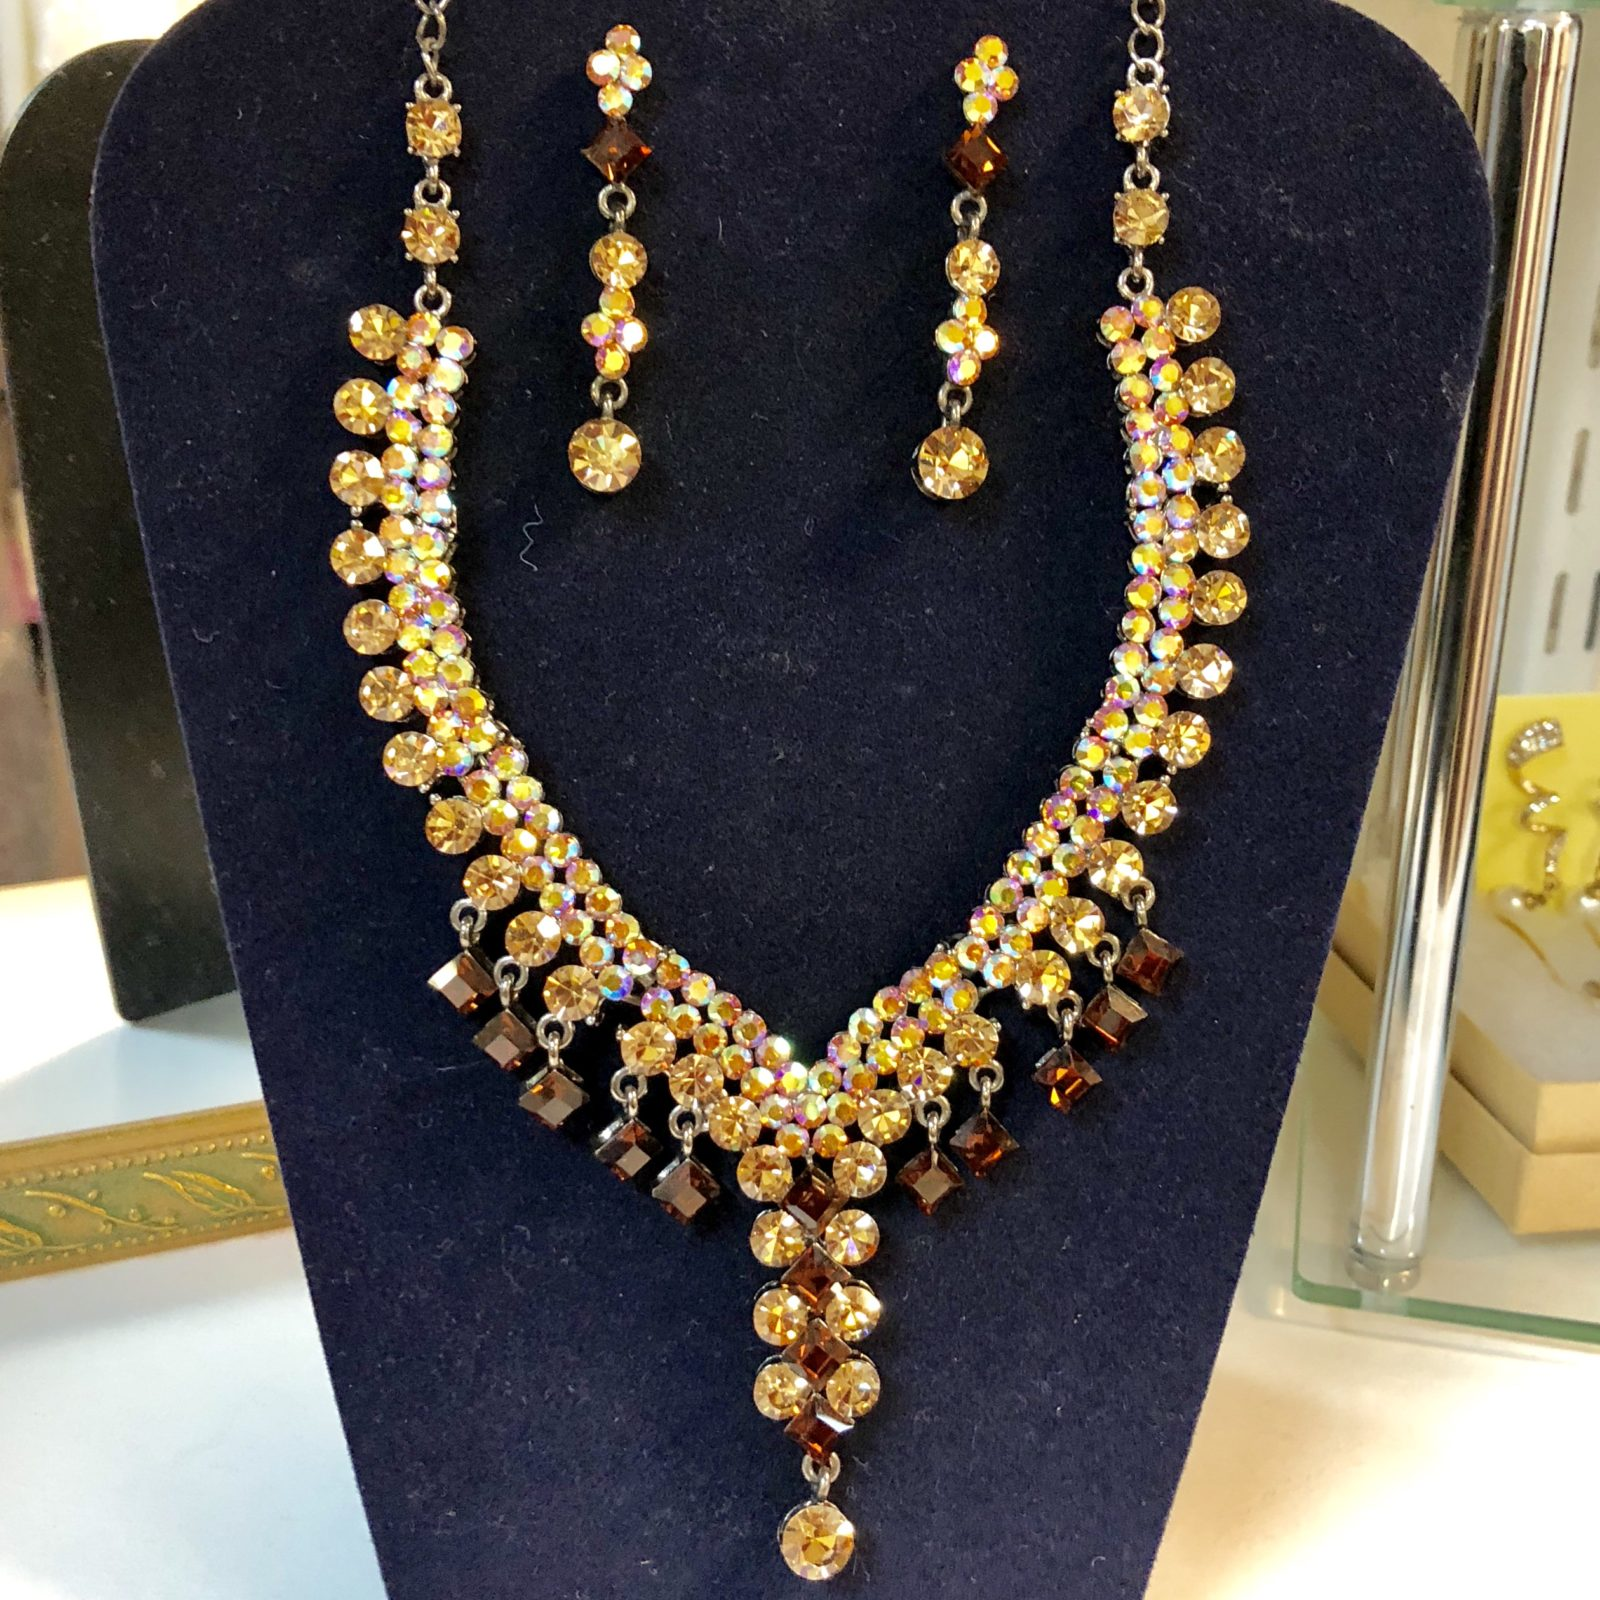 Dangling Necklace Set • Gold dangling necklace and earrings set. With splashes of garnet colored needs